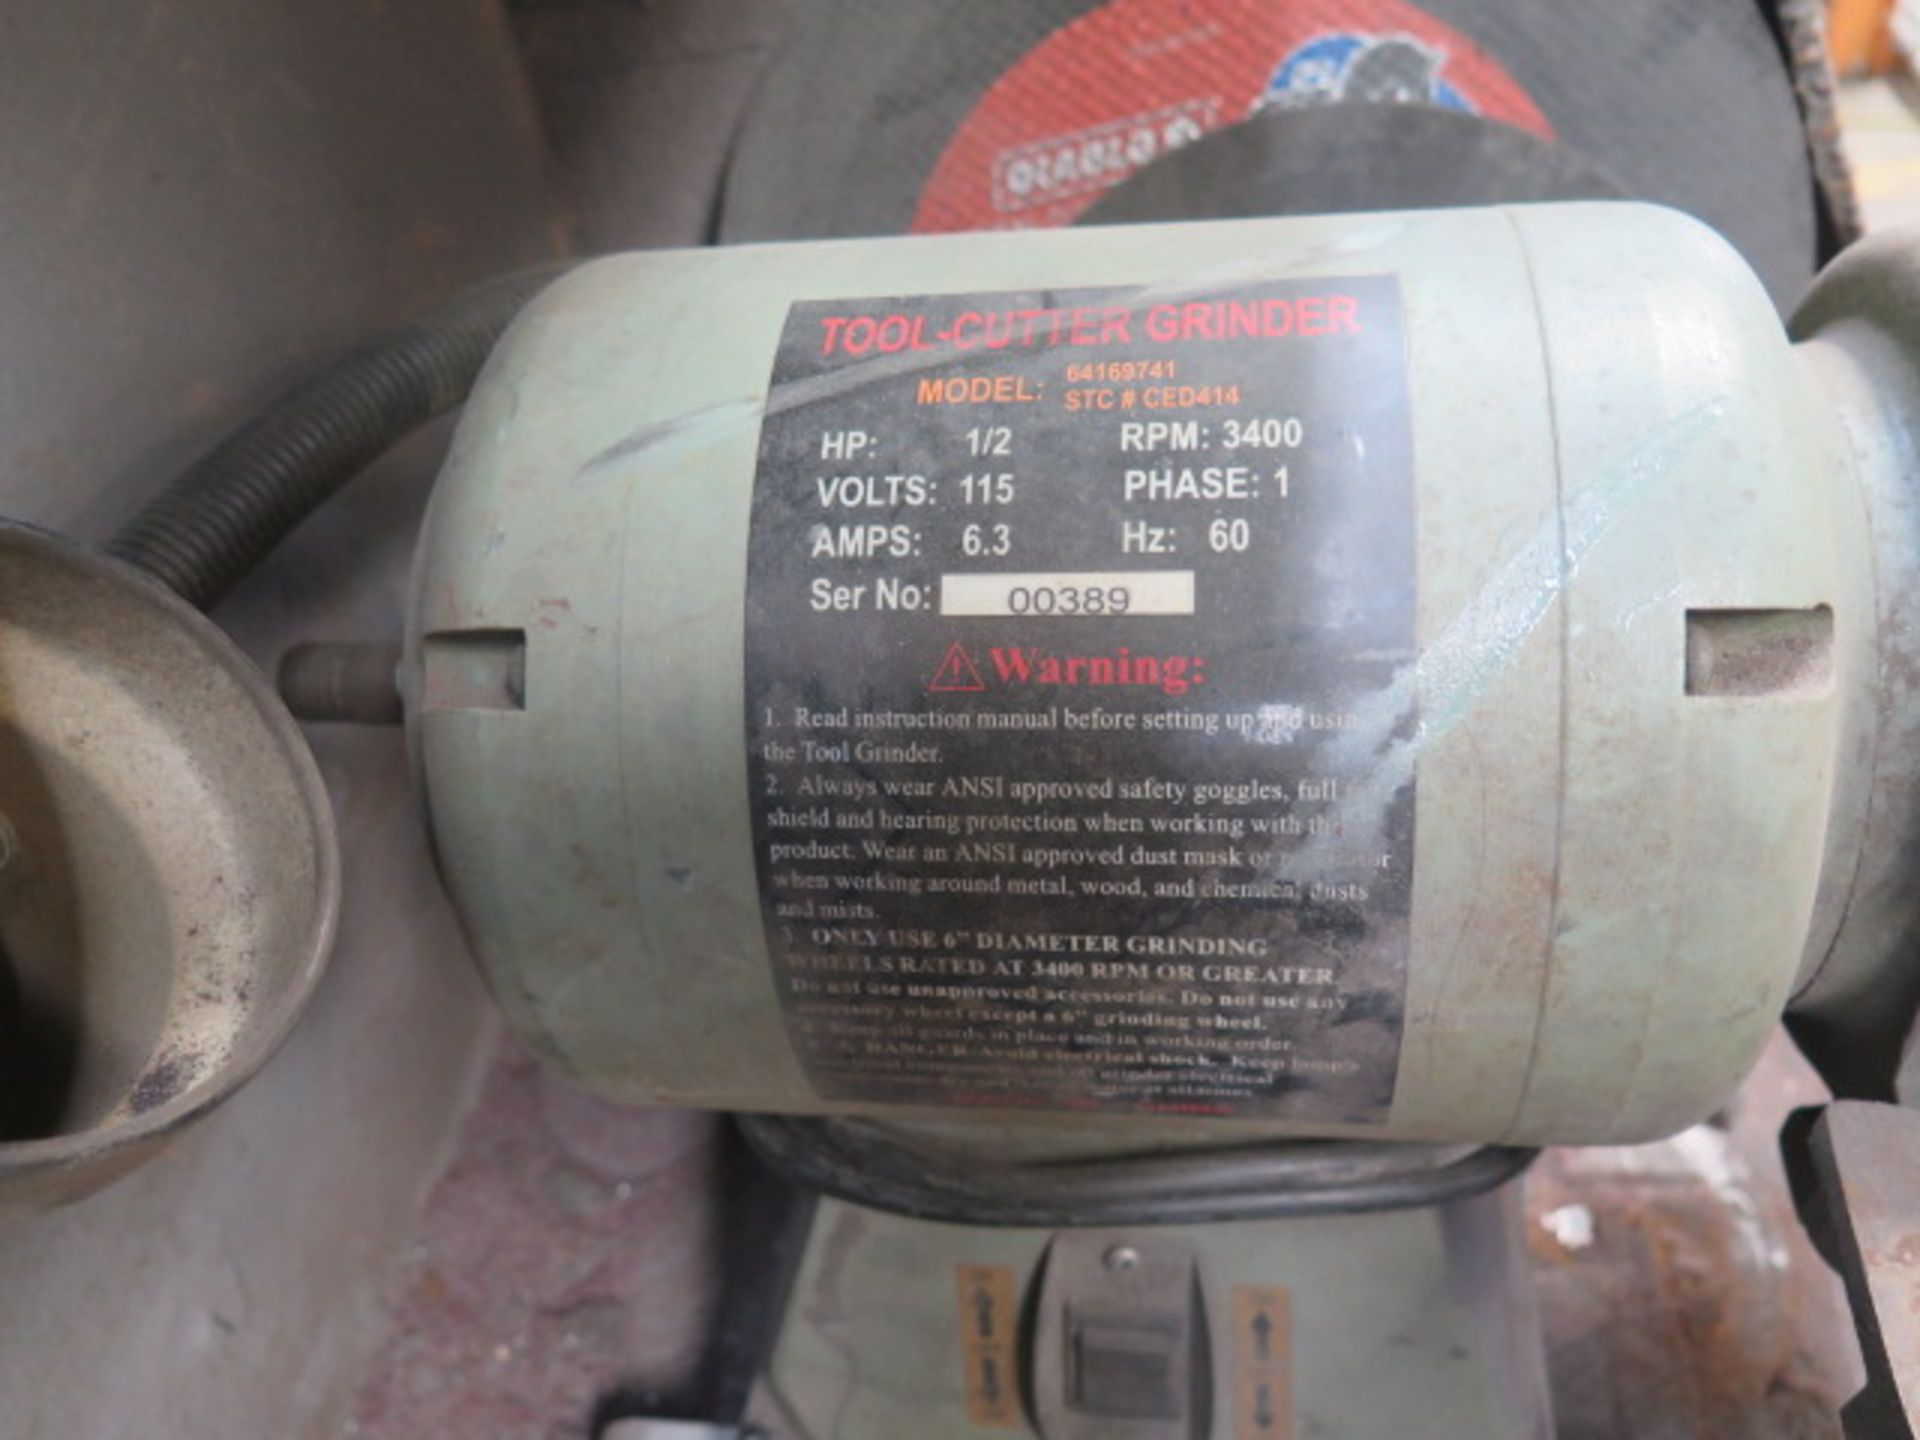 Import Carbide Tool Grinder (NEEDS REPAIR) (SOLD AS-IS - NO WARRANTY) - Image 2 of 6